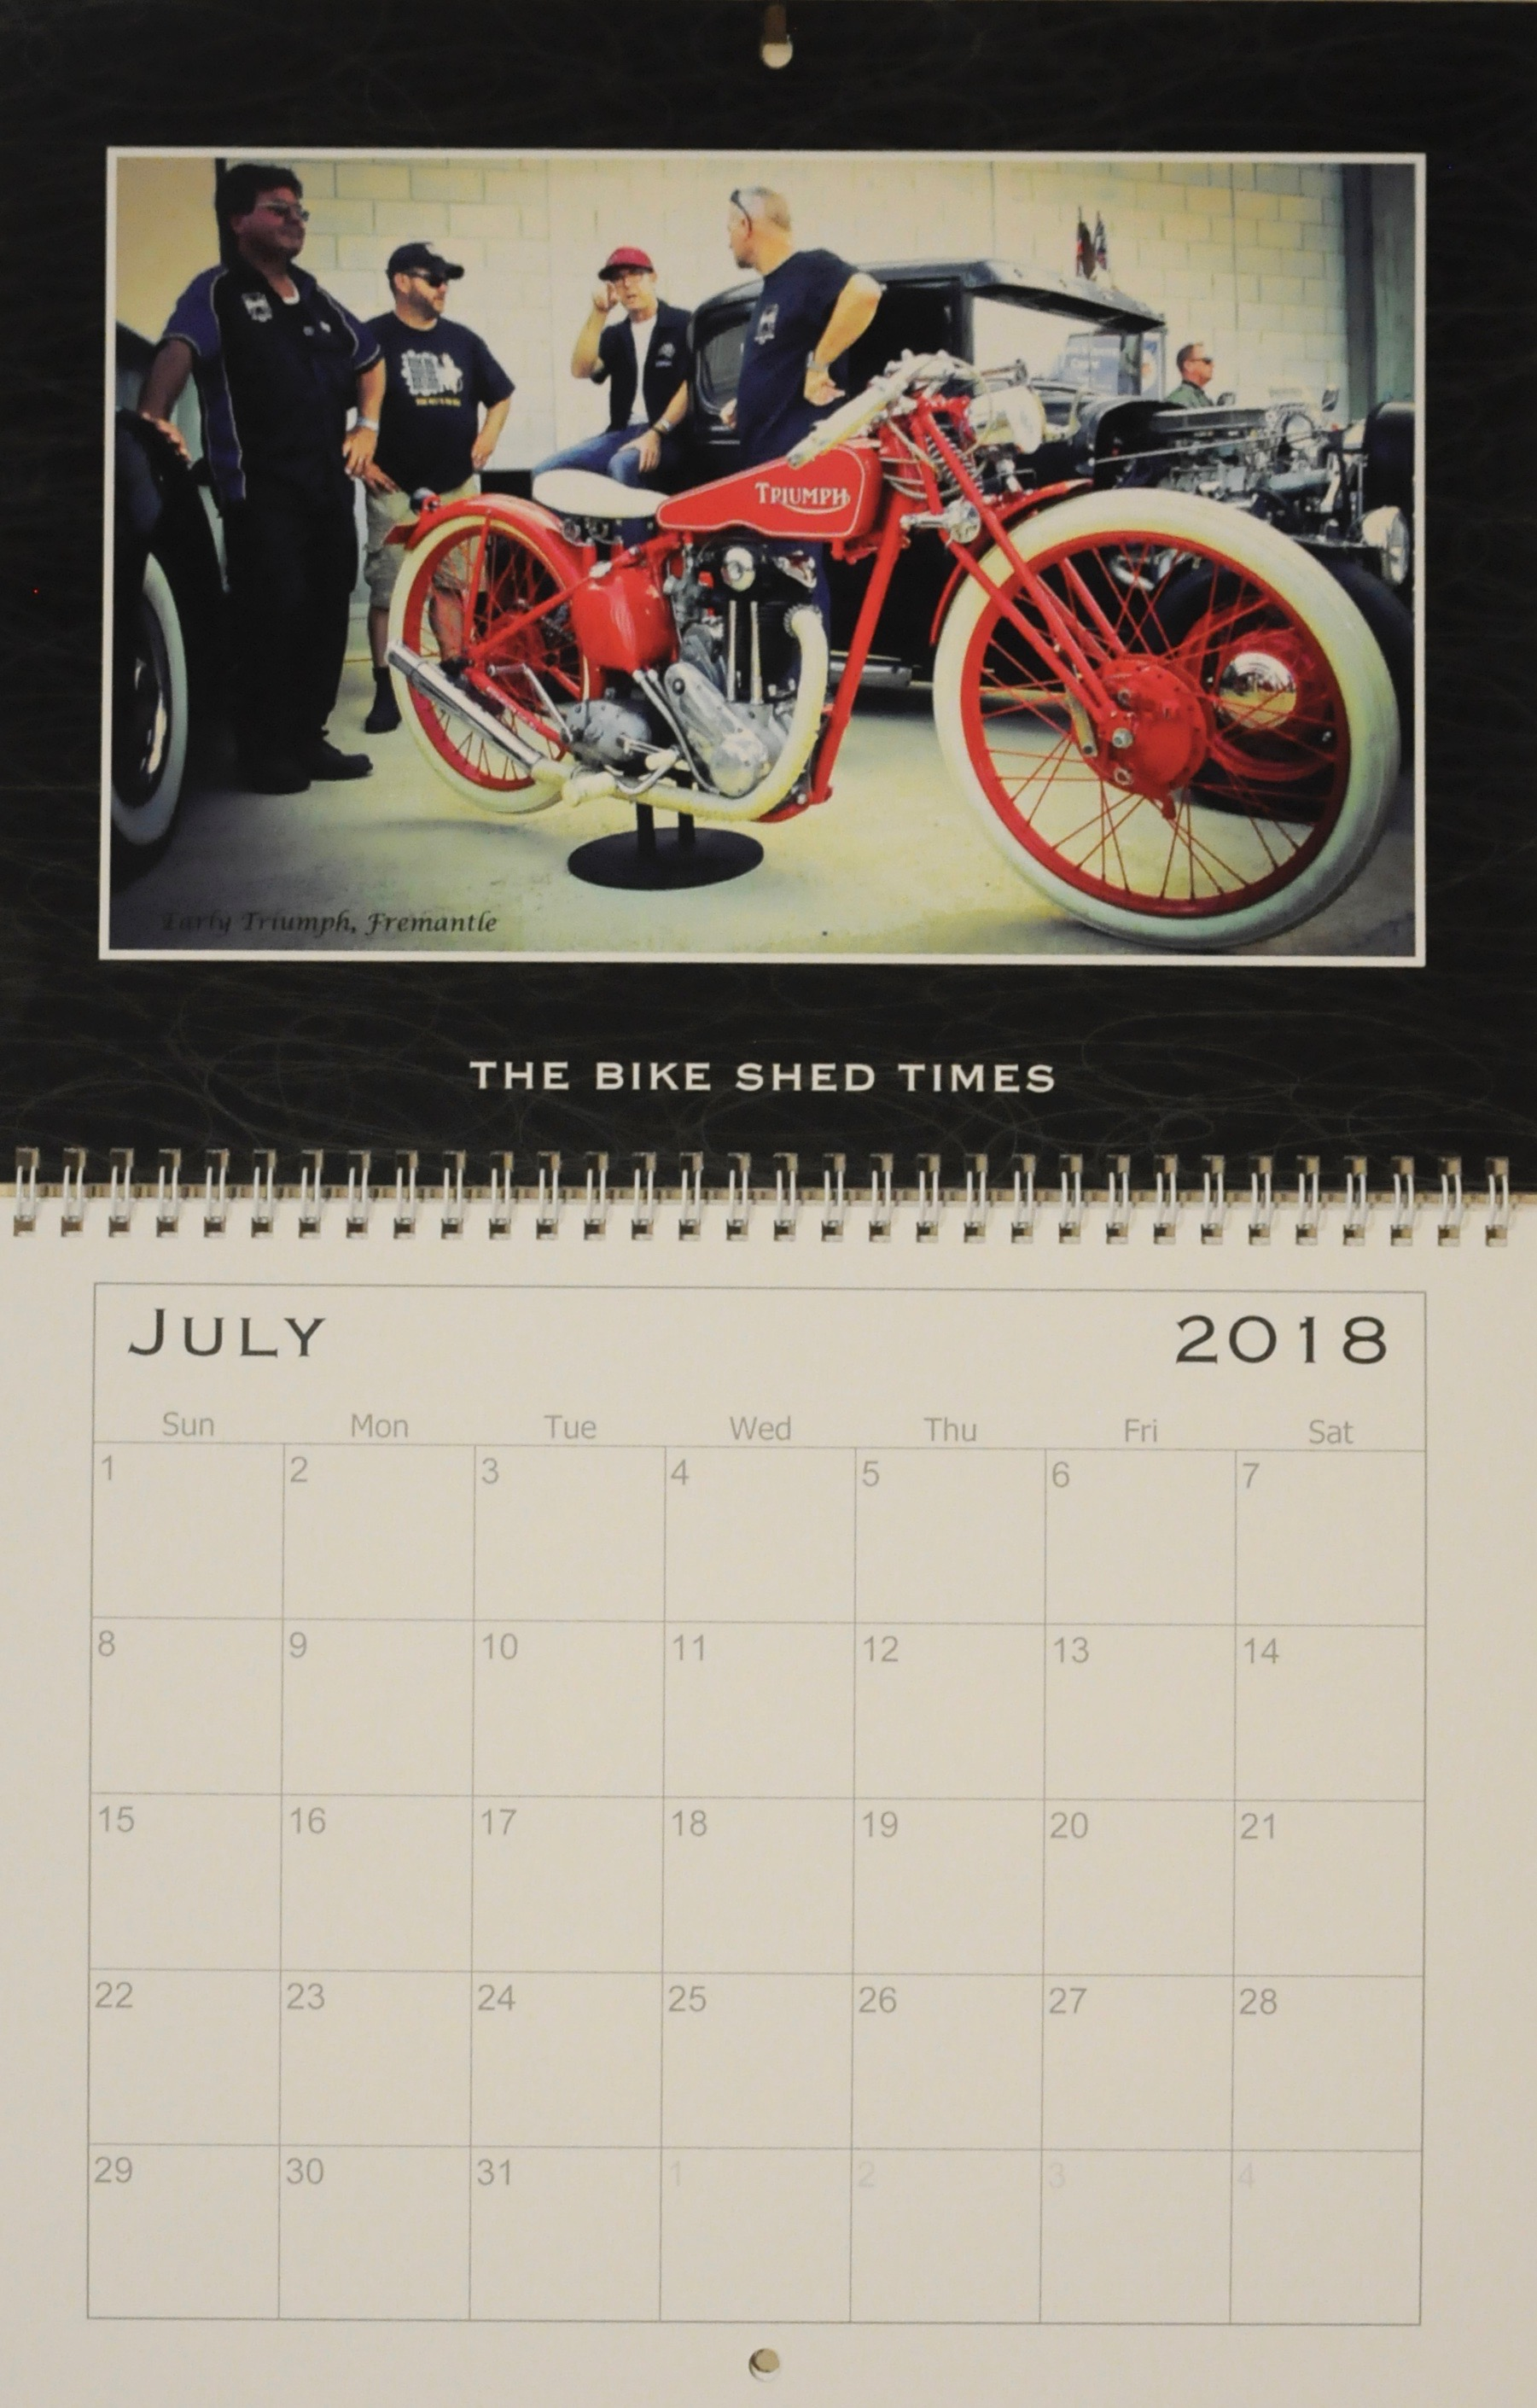 The Bike Shed Times 2018 wall calendar — order yours now for ...